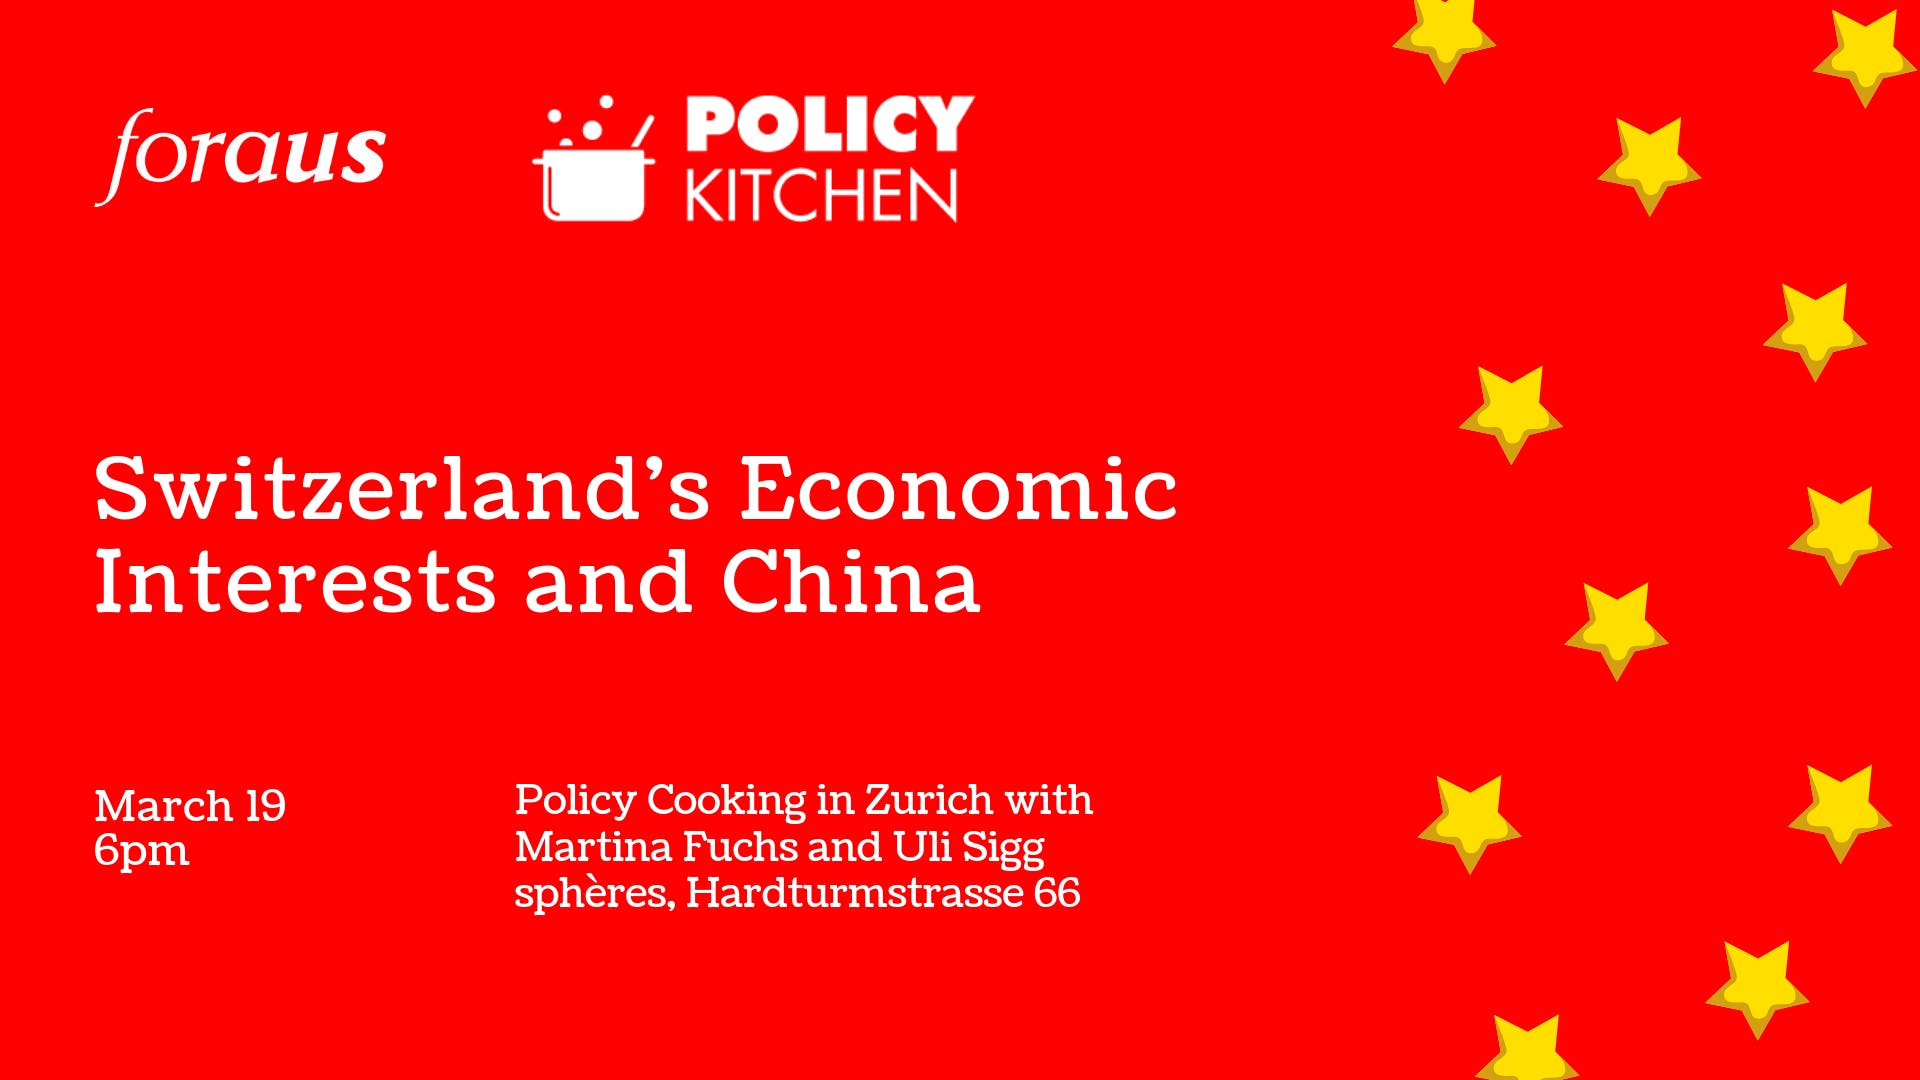 foraus Policy Kitchen China: Policy Cooking in Zurich